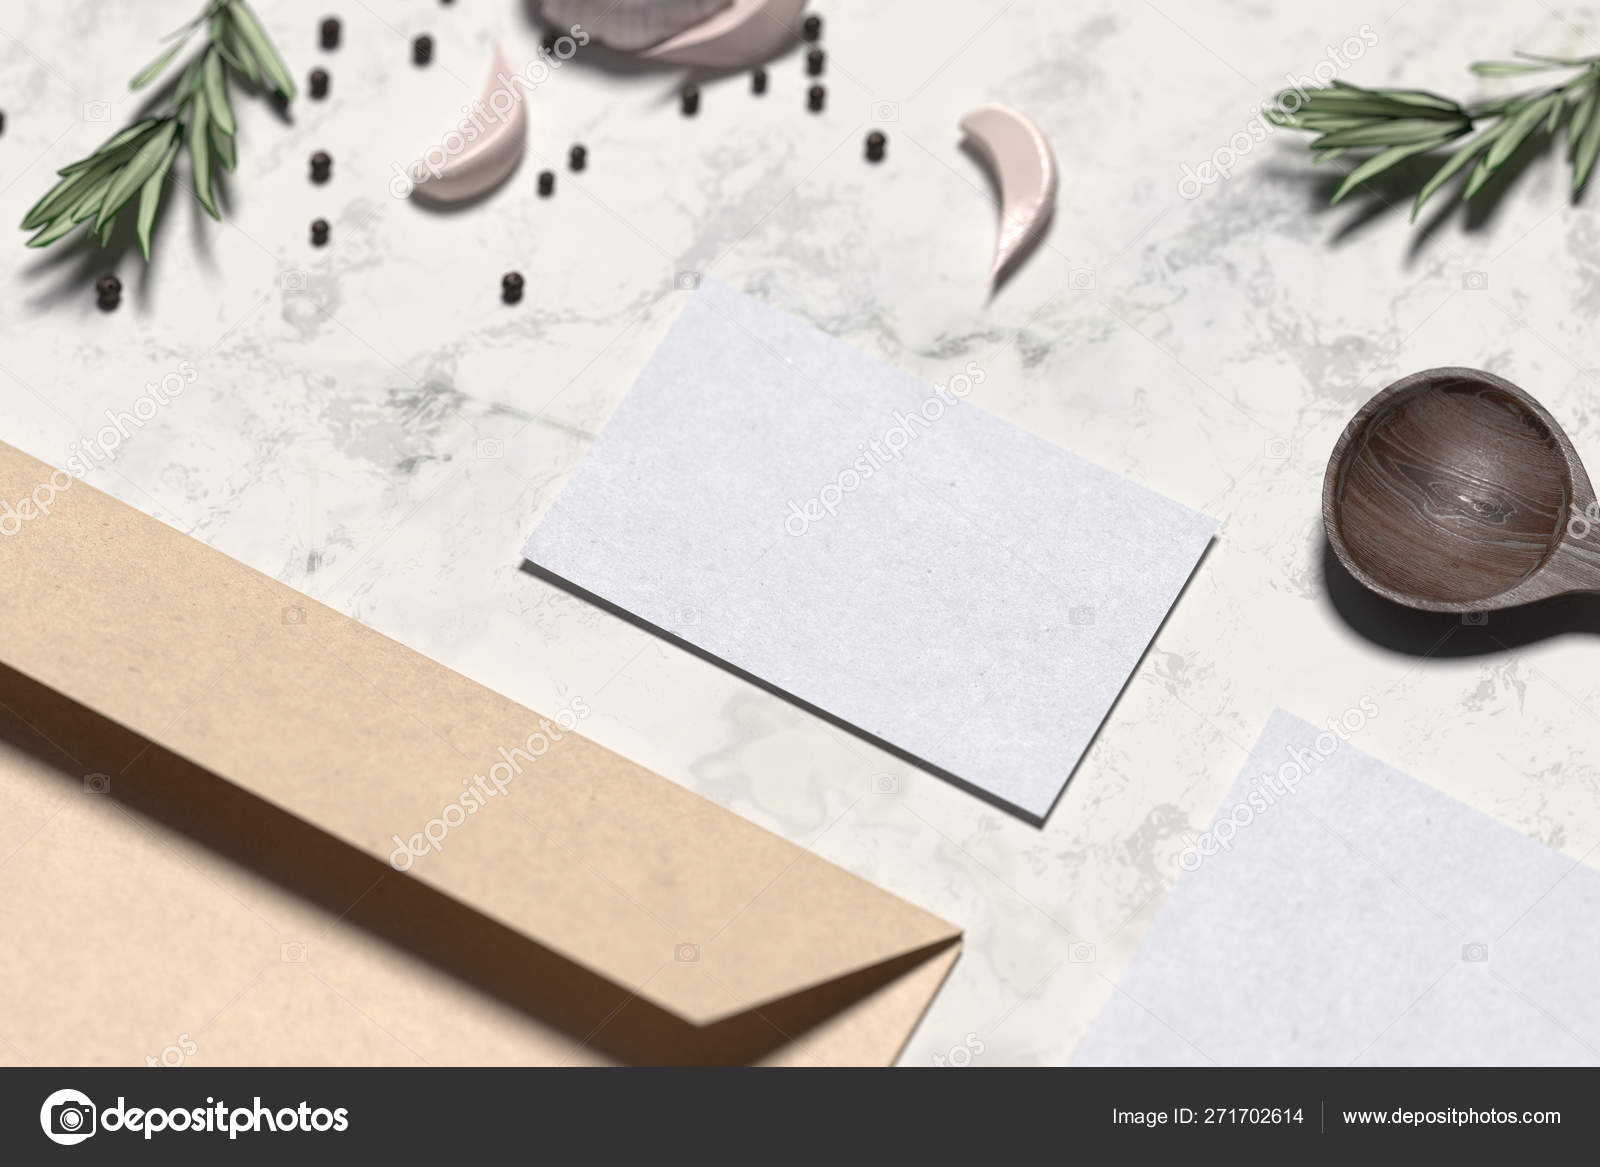 Blank envelope and business card near wooden spoon and